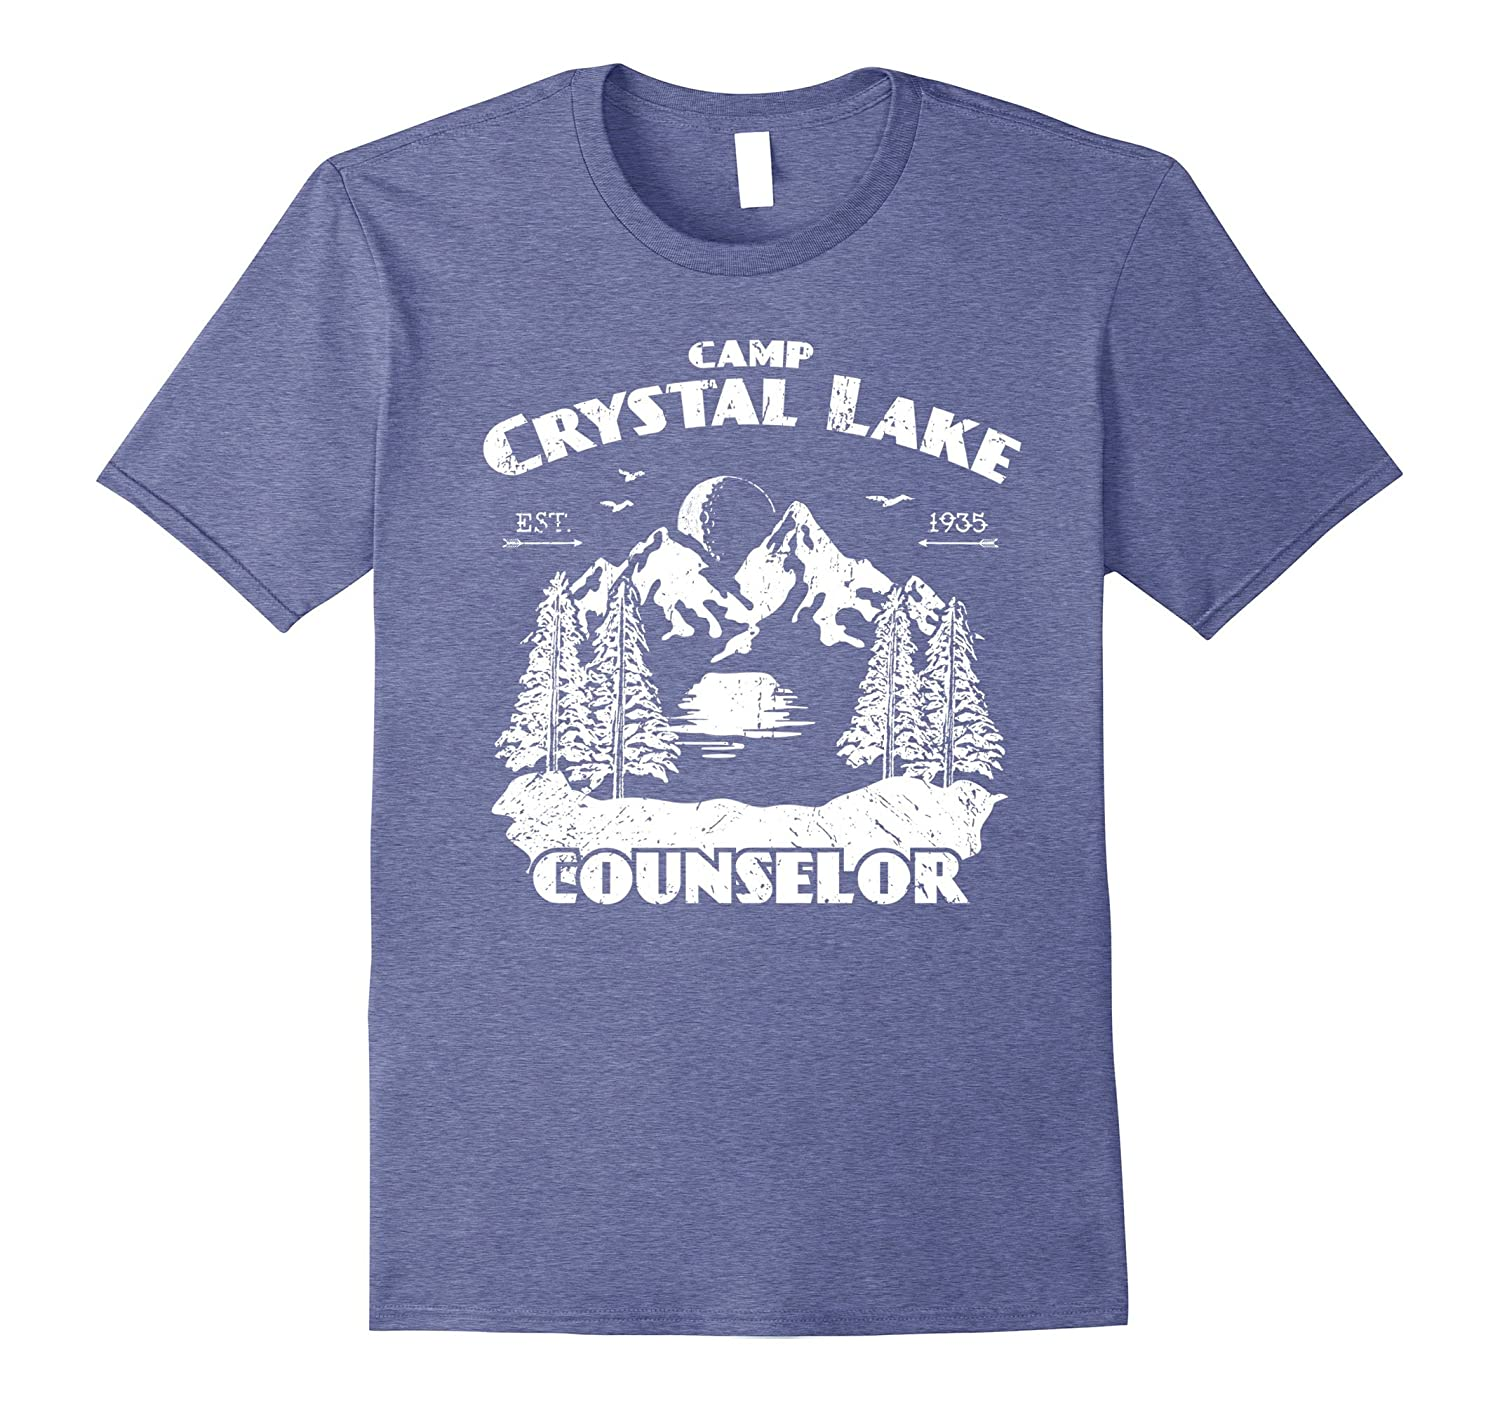 129f9e99afb1 Camp Camping Crystal Lake Counselor Vintage Gift T-Shirt-FL ...